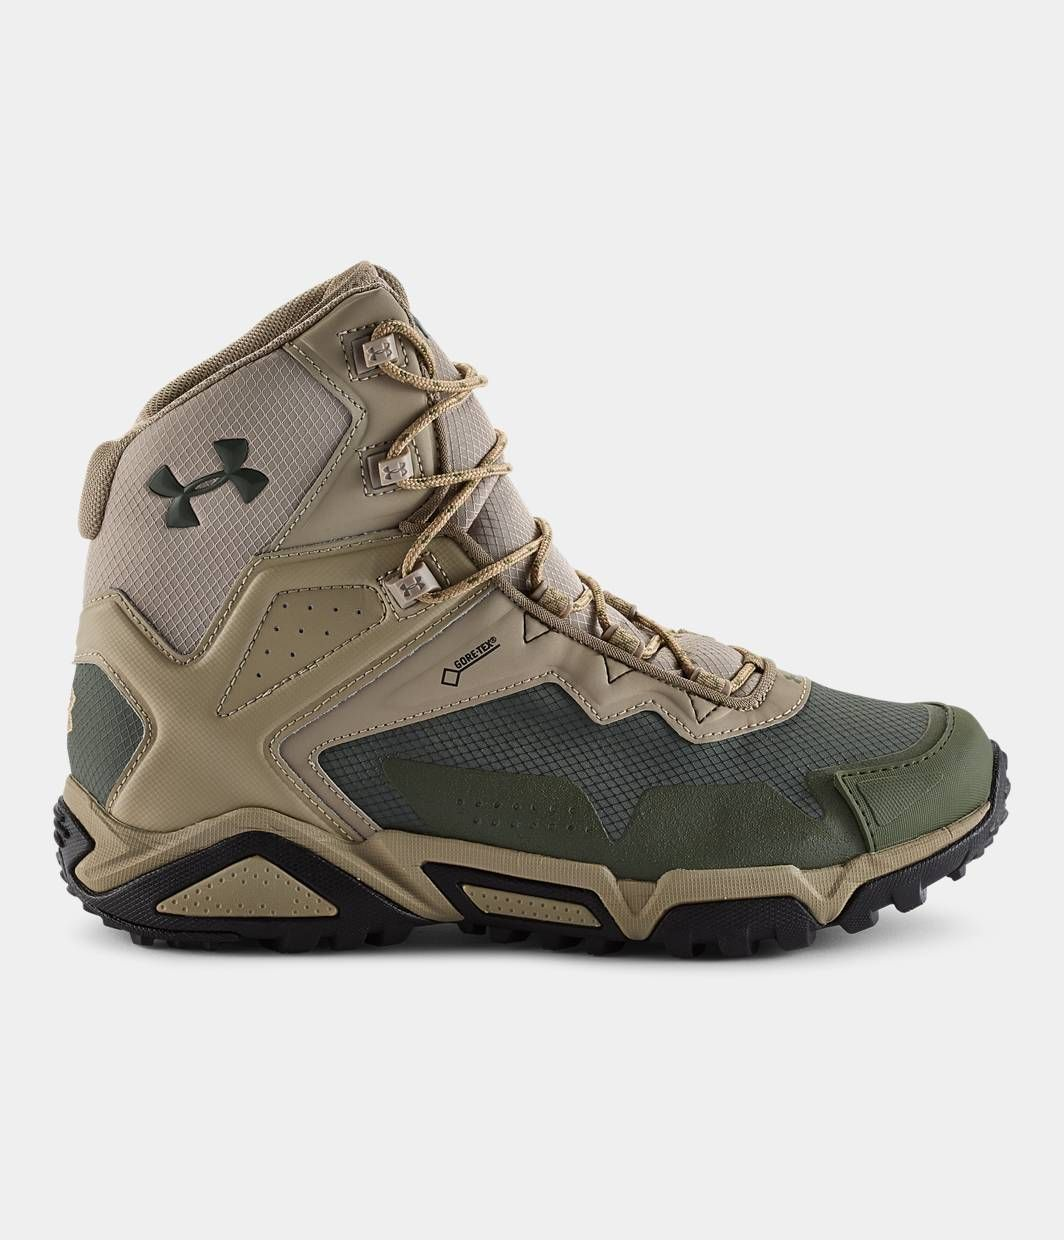 7140febb32 Men's UA Tabor Ridge Mid Boots | Under Armour US | Men Styles ...